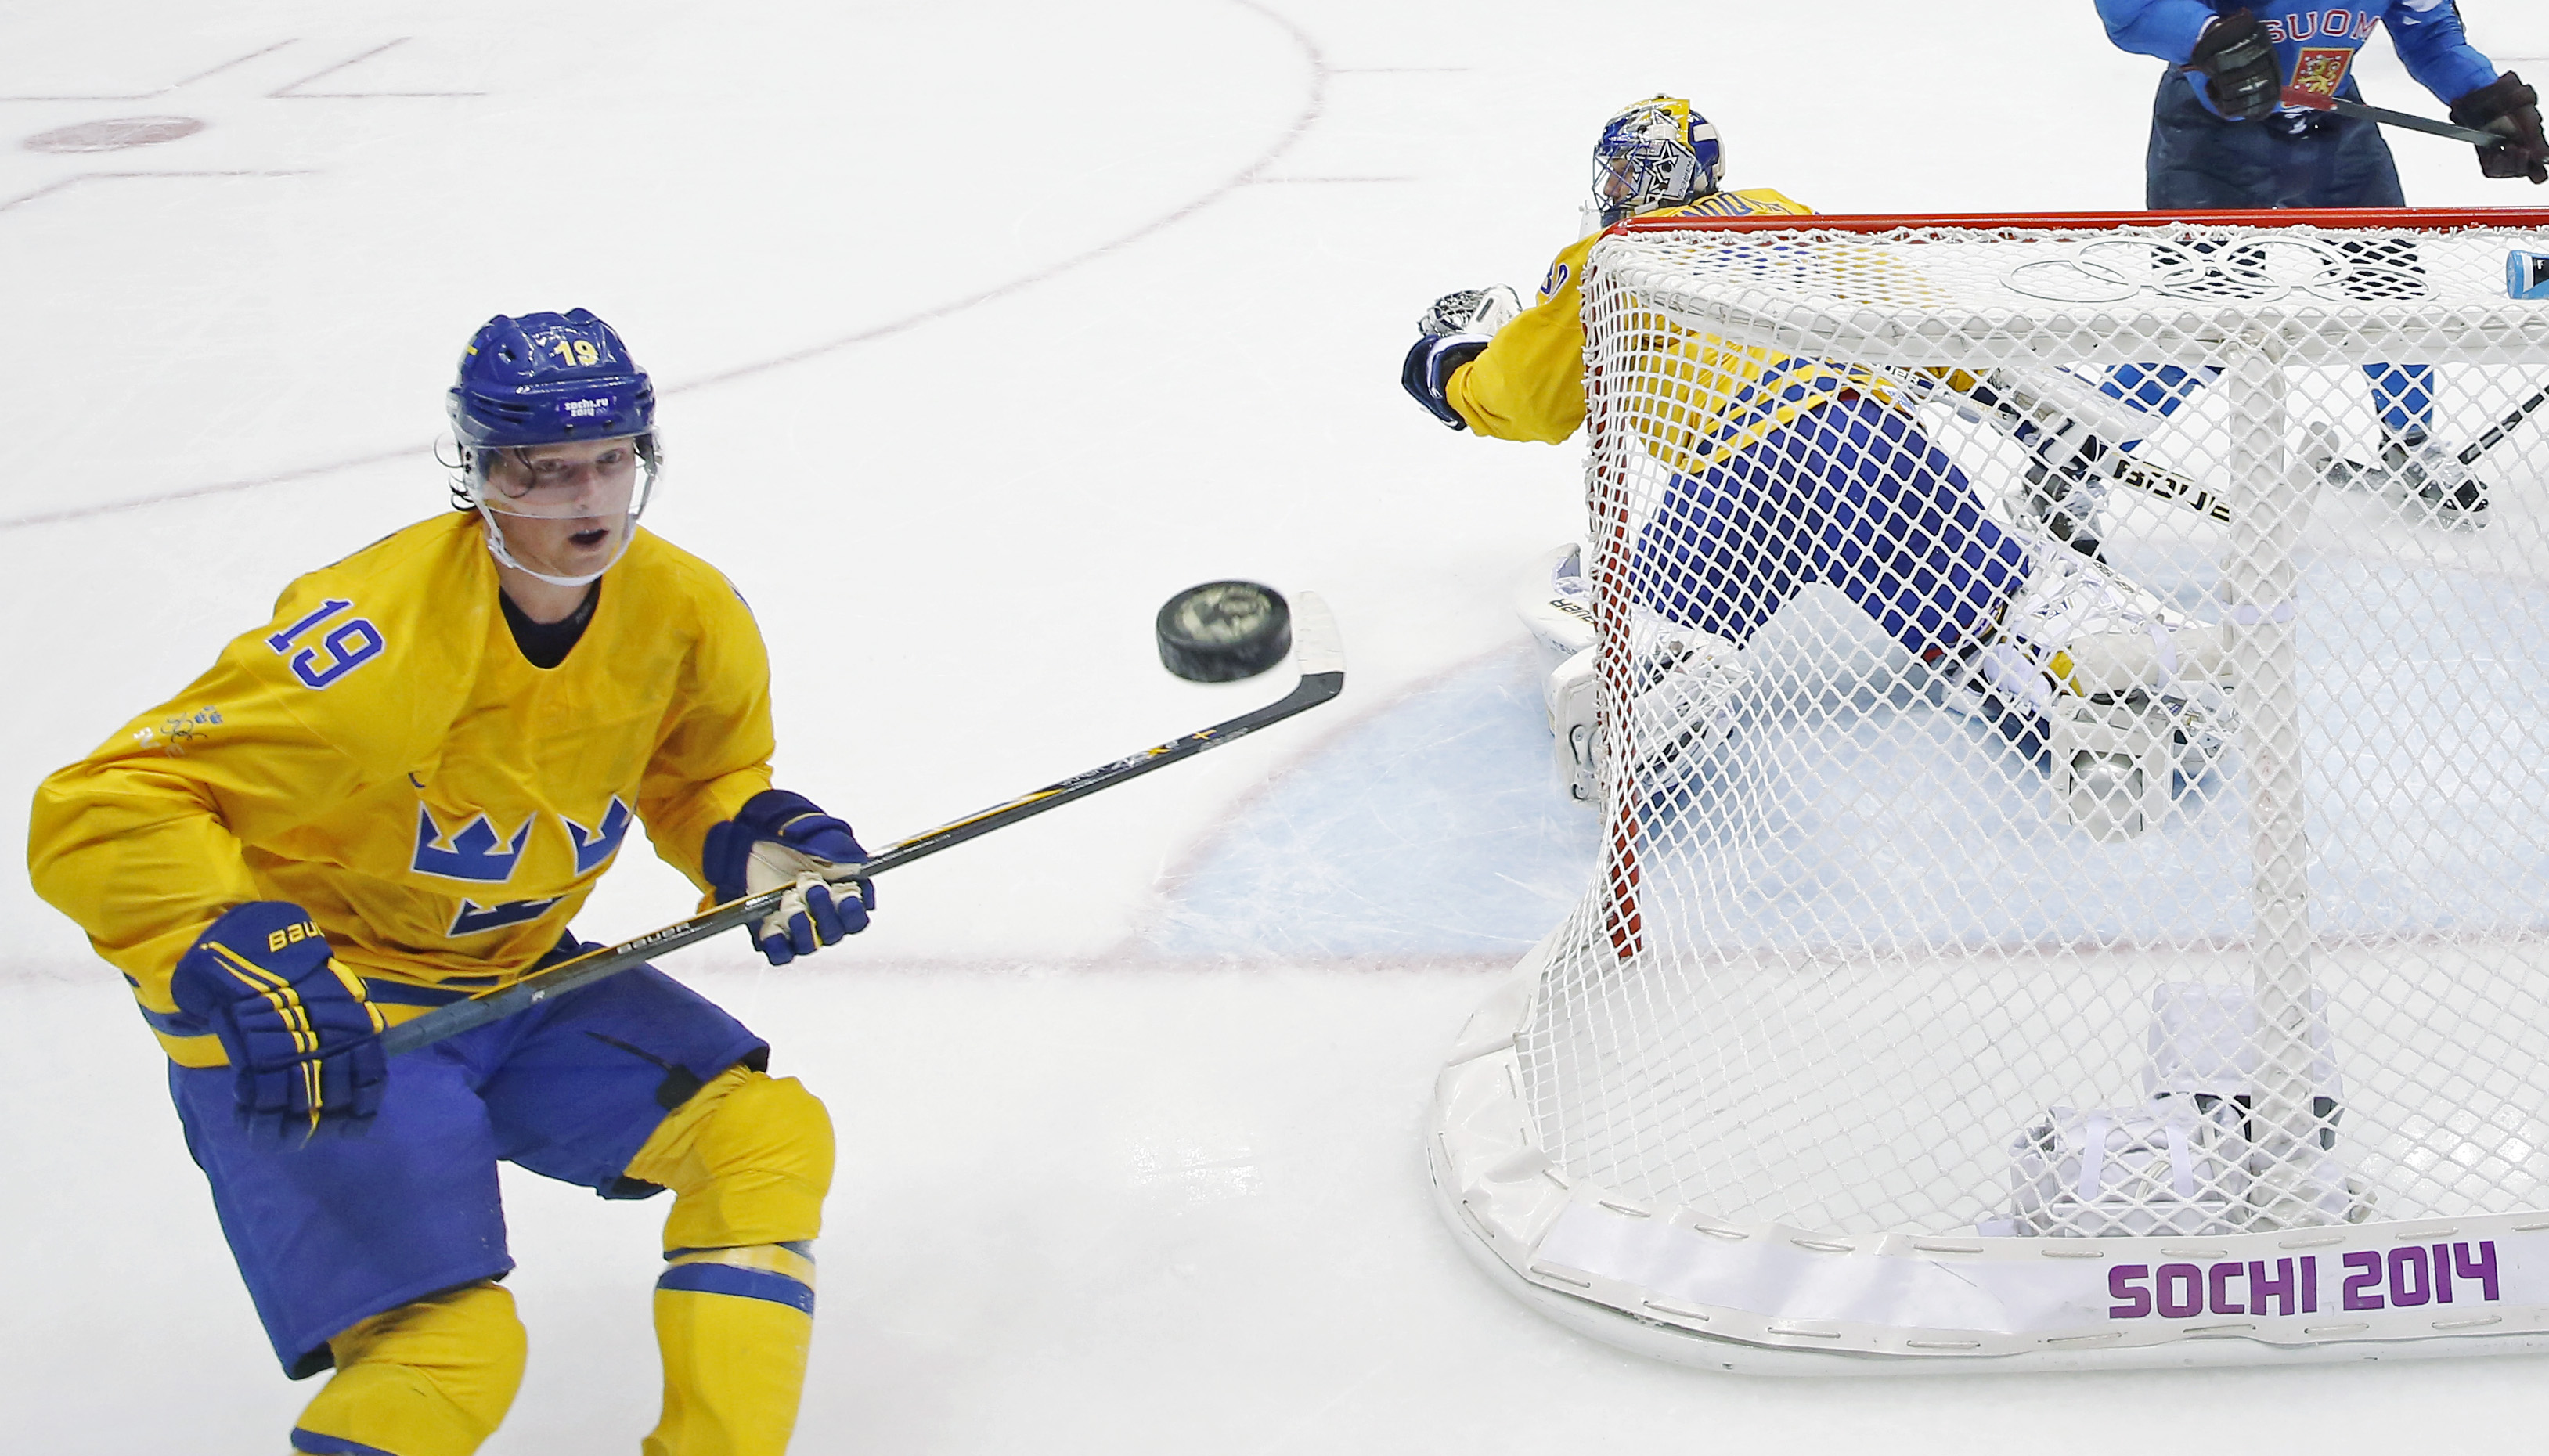 Sweden forward Nicklas Backstrom watches a shot that got past Sweden goaltender Henrik Lundqvist during a men's semifinal ice hockey game against Finland at the 2014 Winter Olympics, Friday, Feb. 21, 2014, in Sochi, Russia. (AP Photo/David J. Phillip)